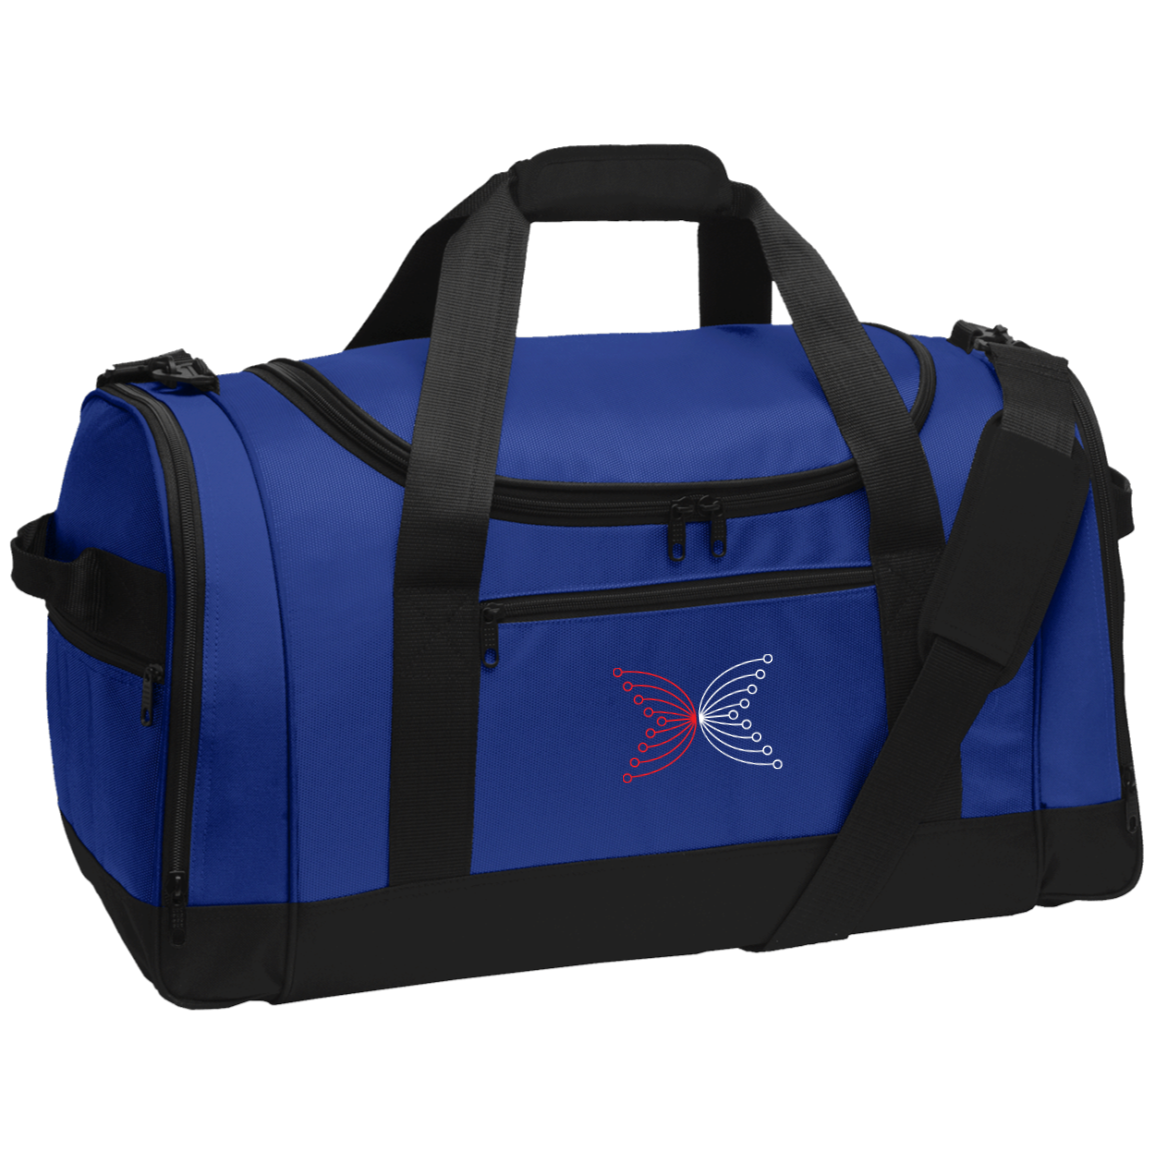 IOHK Travel Sports Duffel